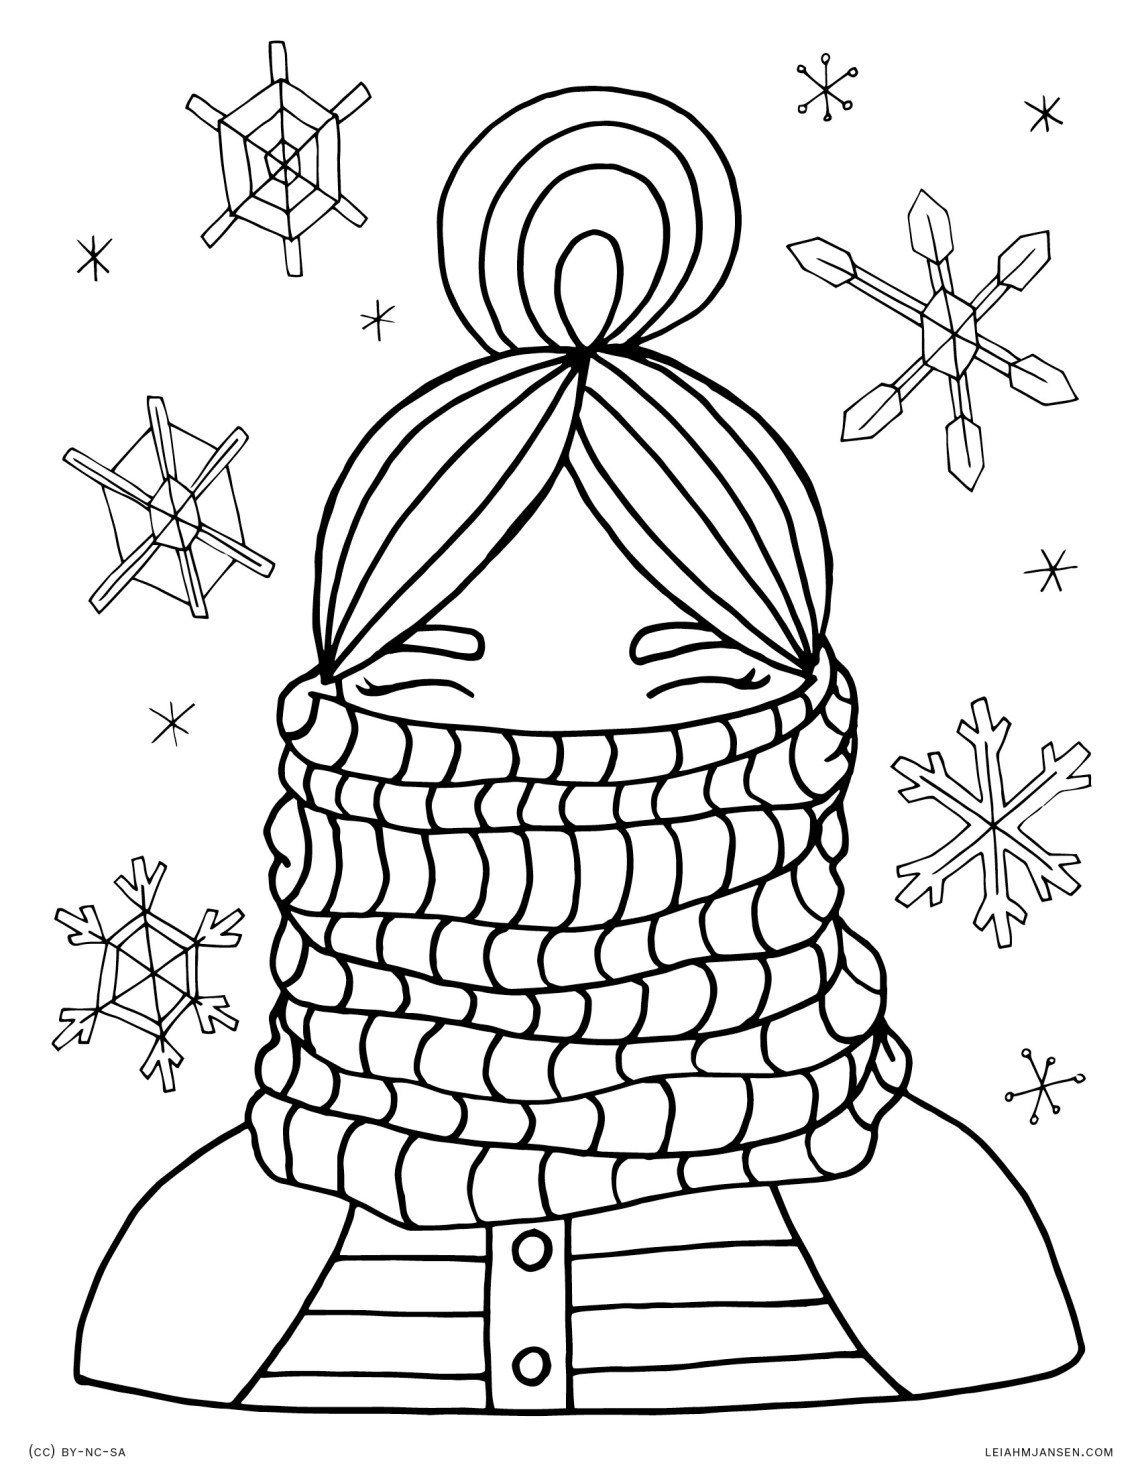 Coloring Pages | winter coloring pages for adults